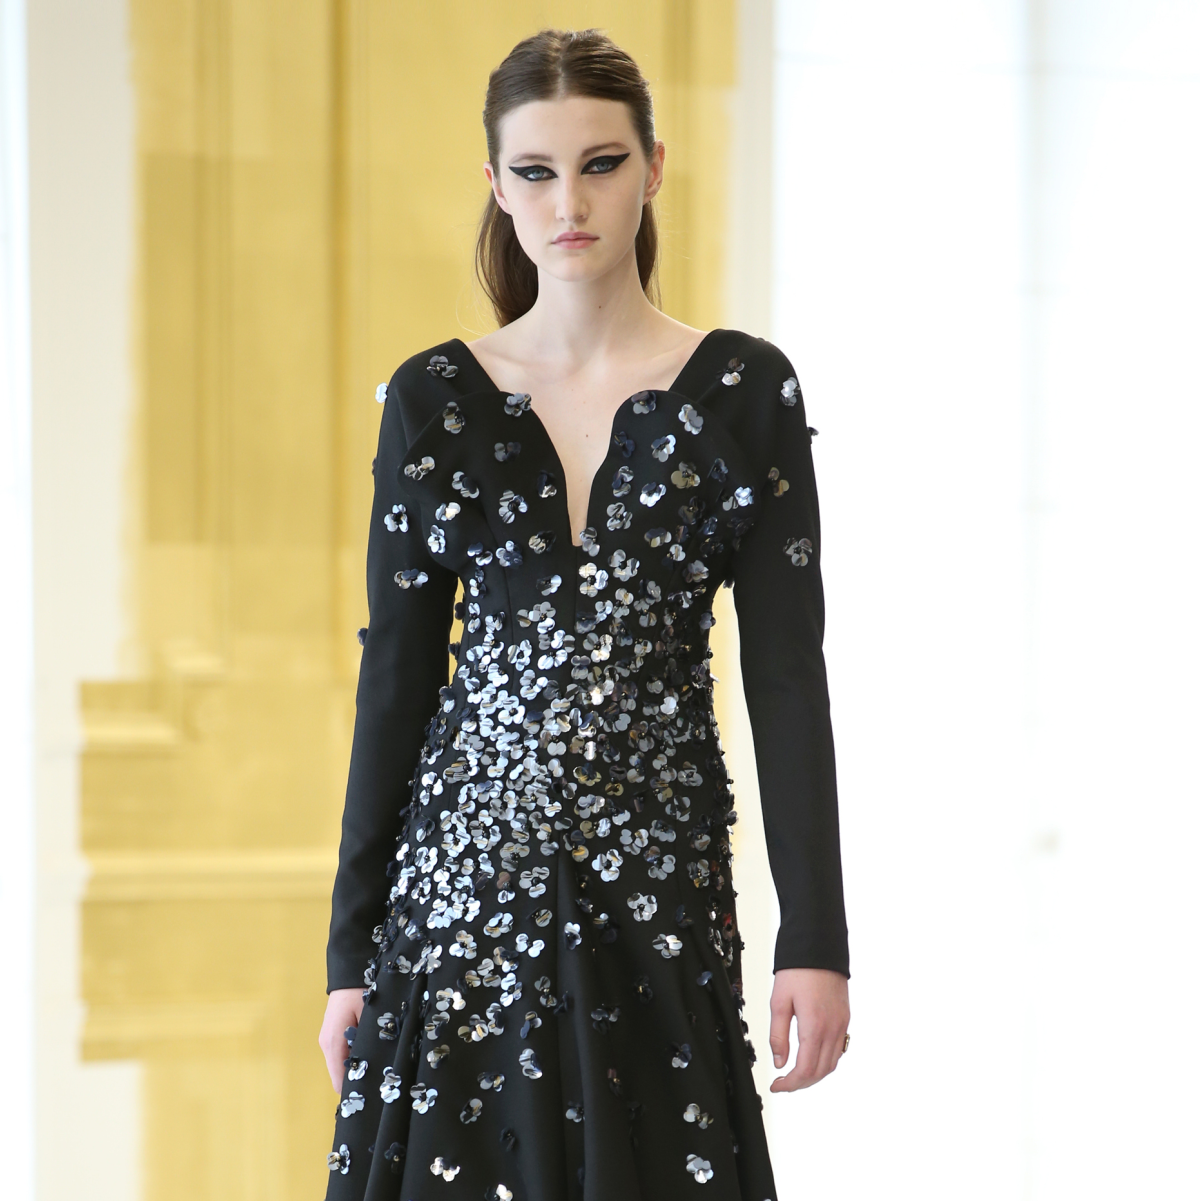 Dior haute couture runway show Paris finale look 39